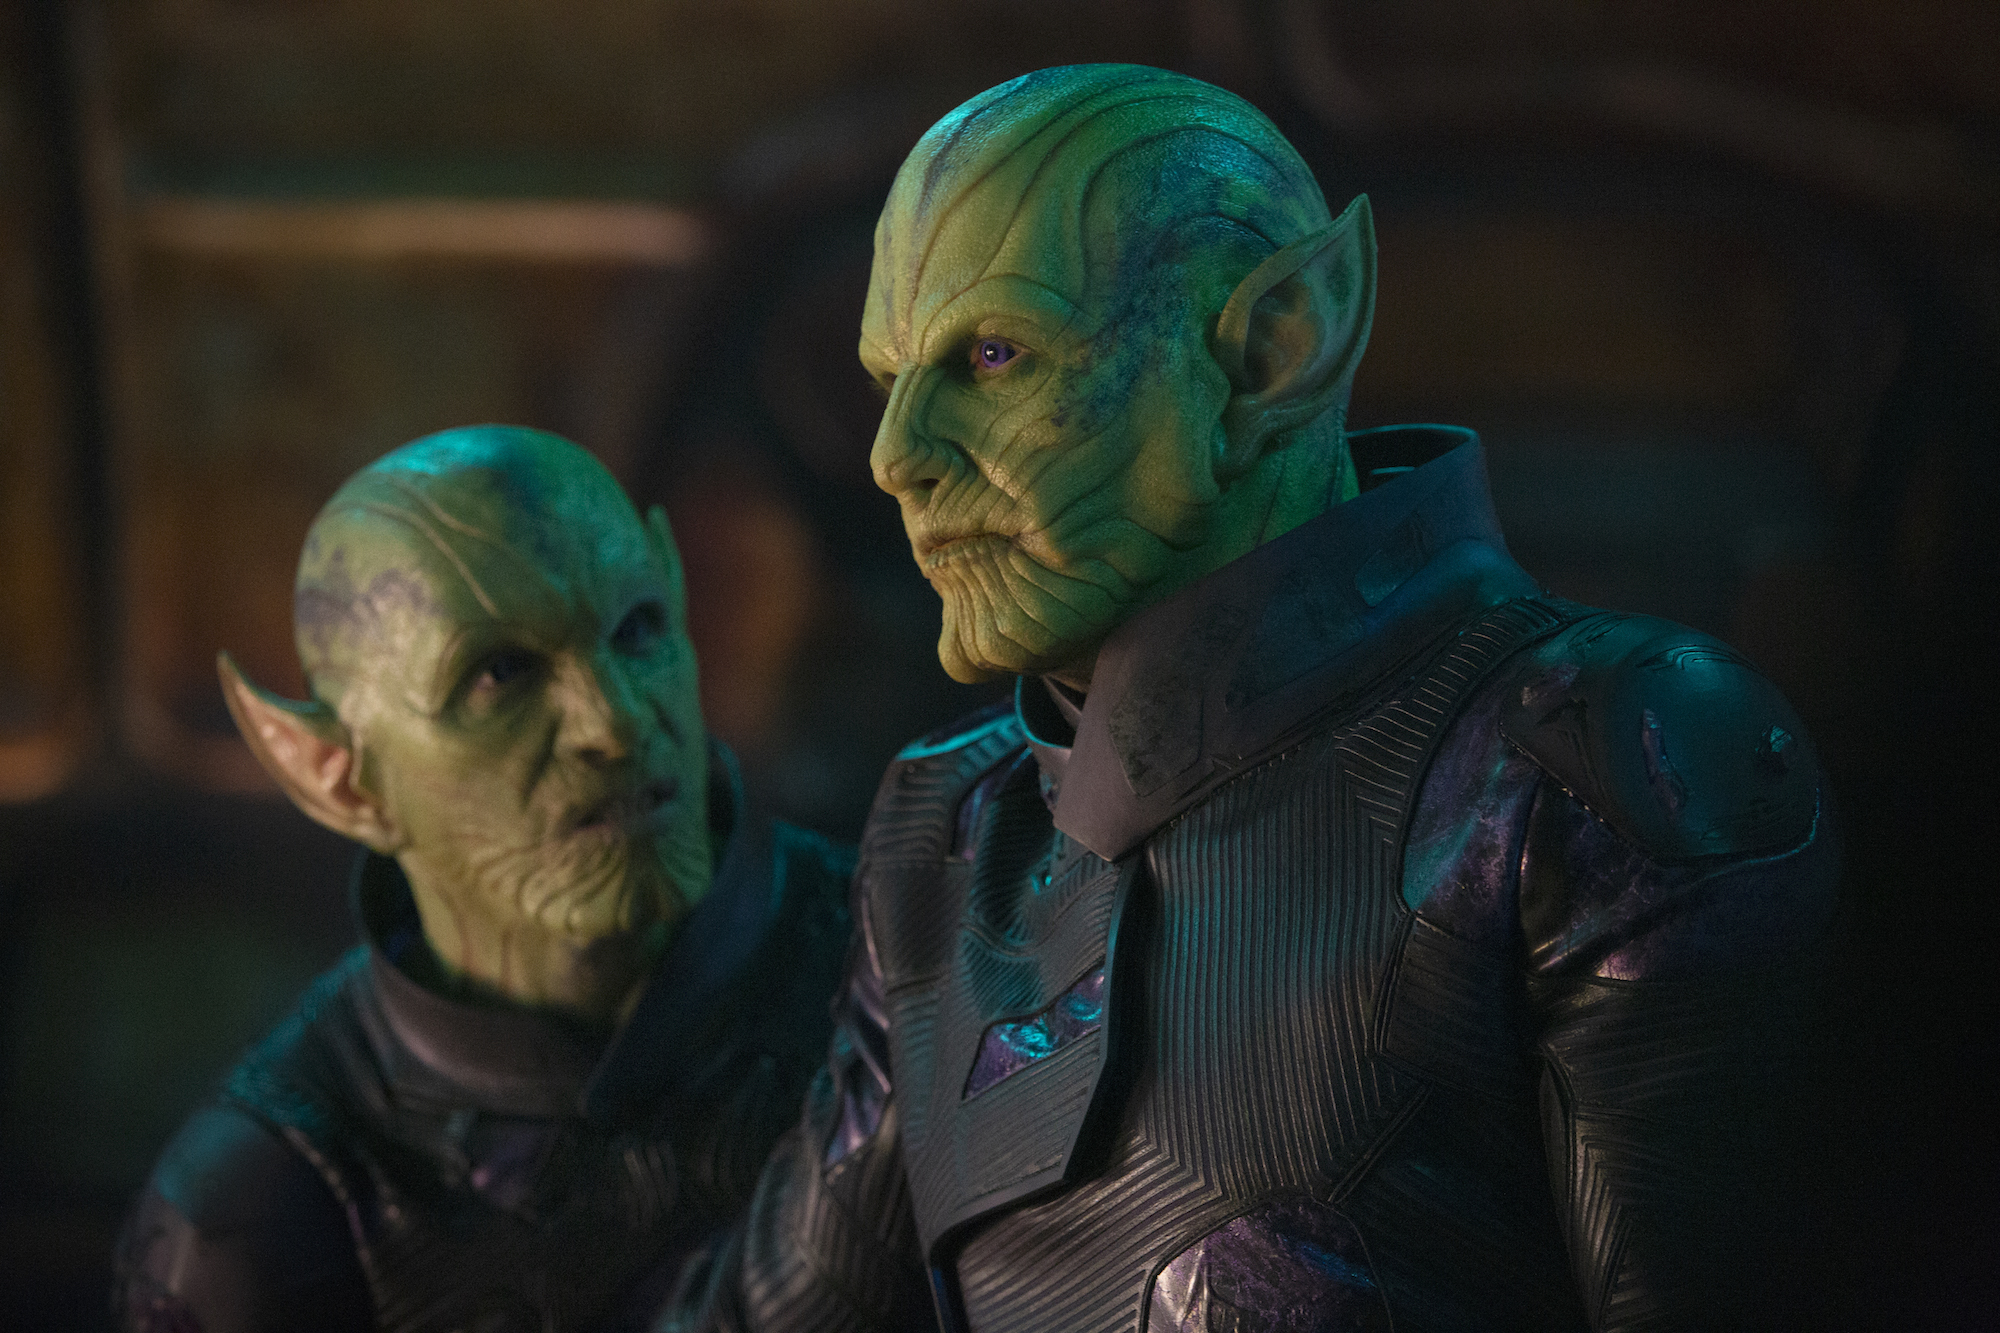 captain marvel allegory skrulls